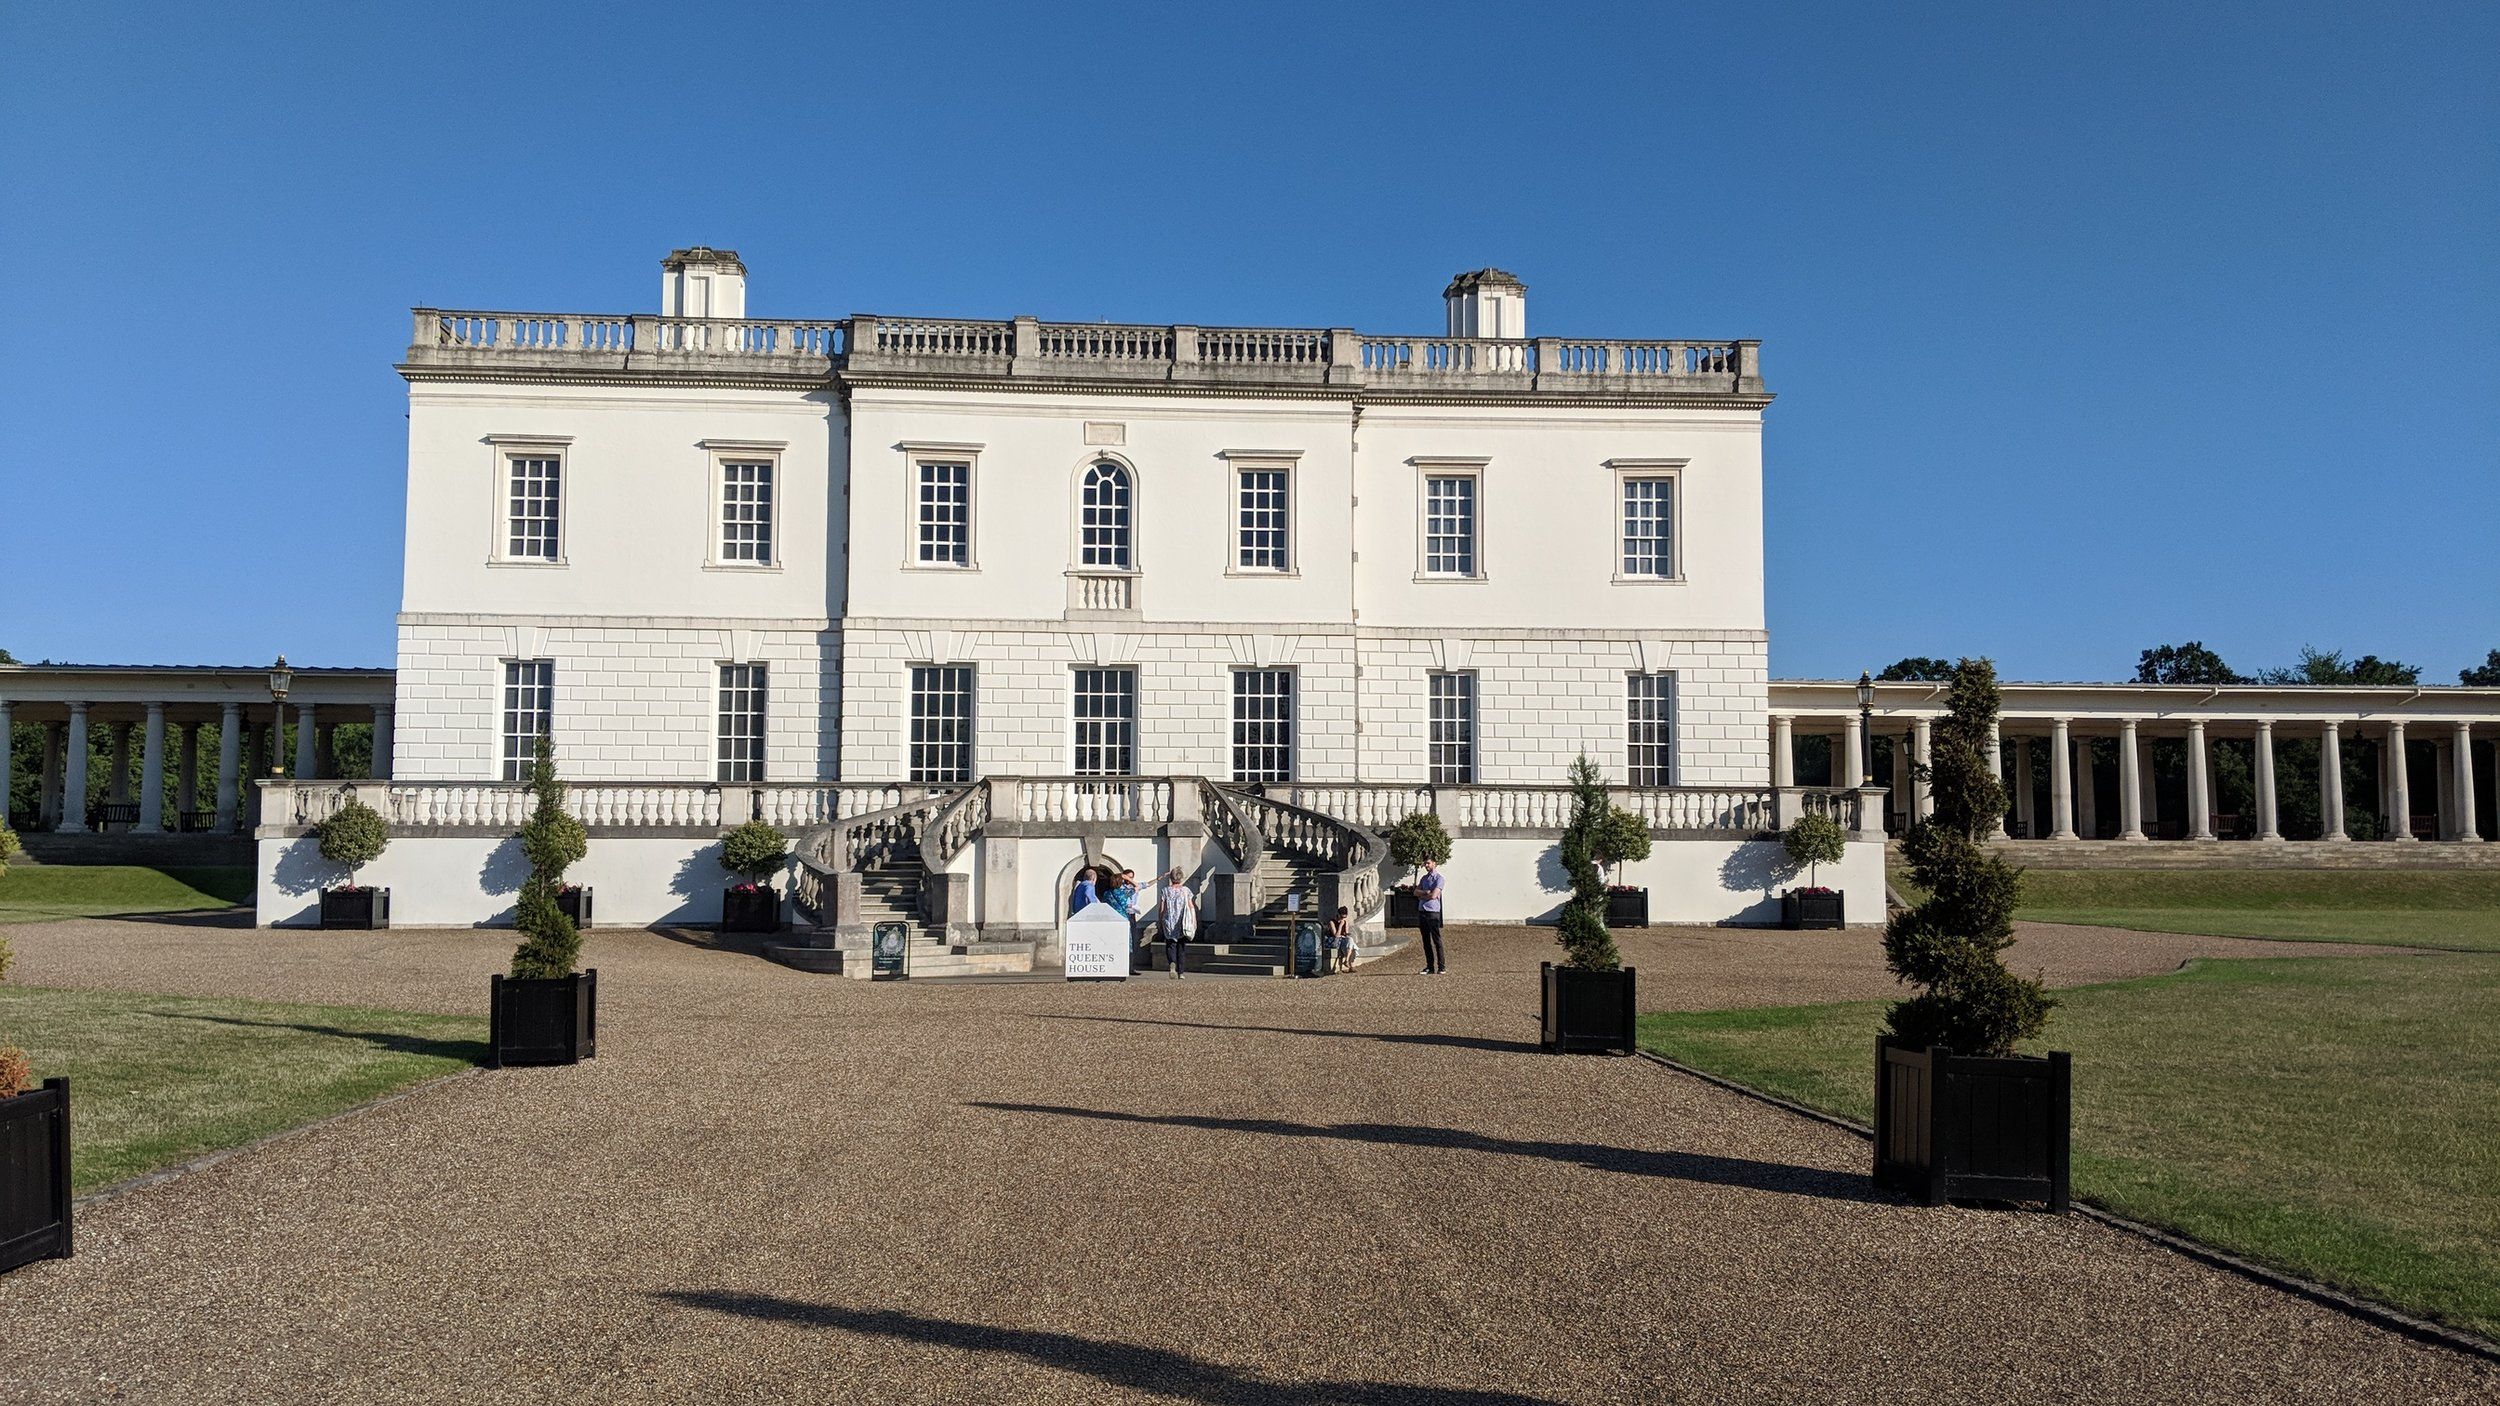 Queen's House, Greenwich - visited 03/07/2019